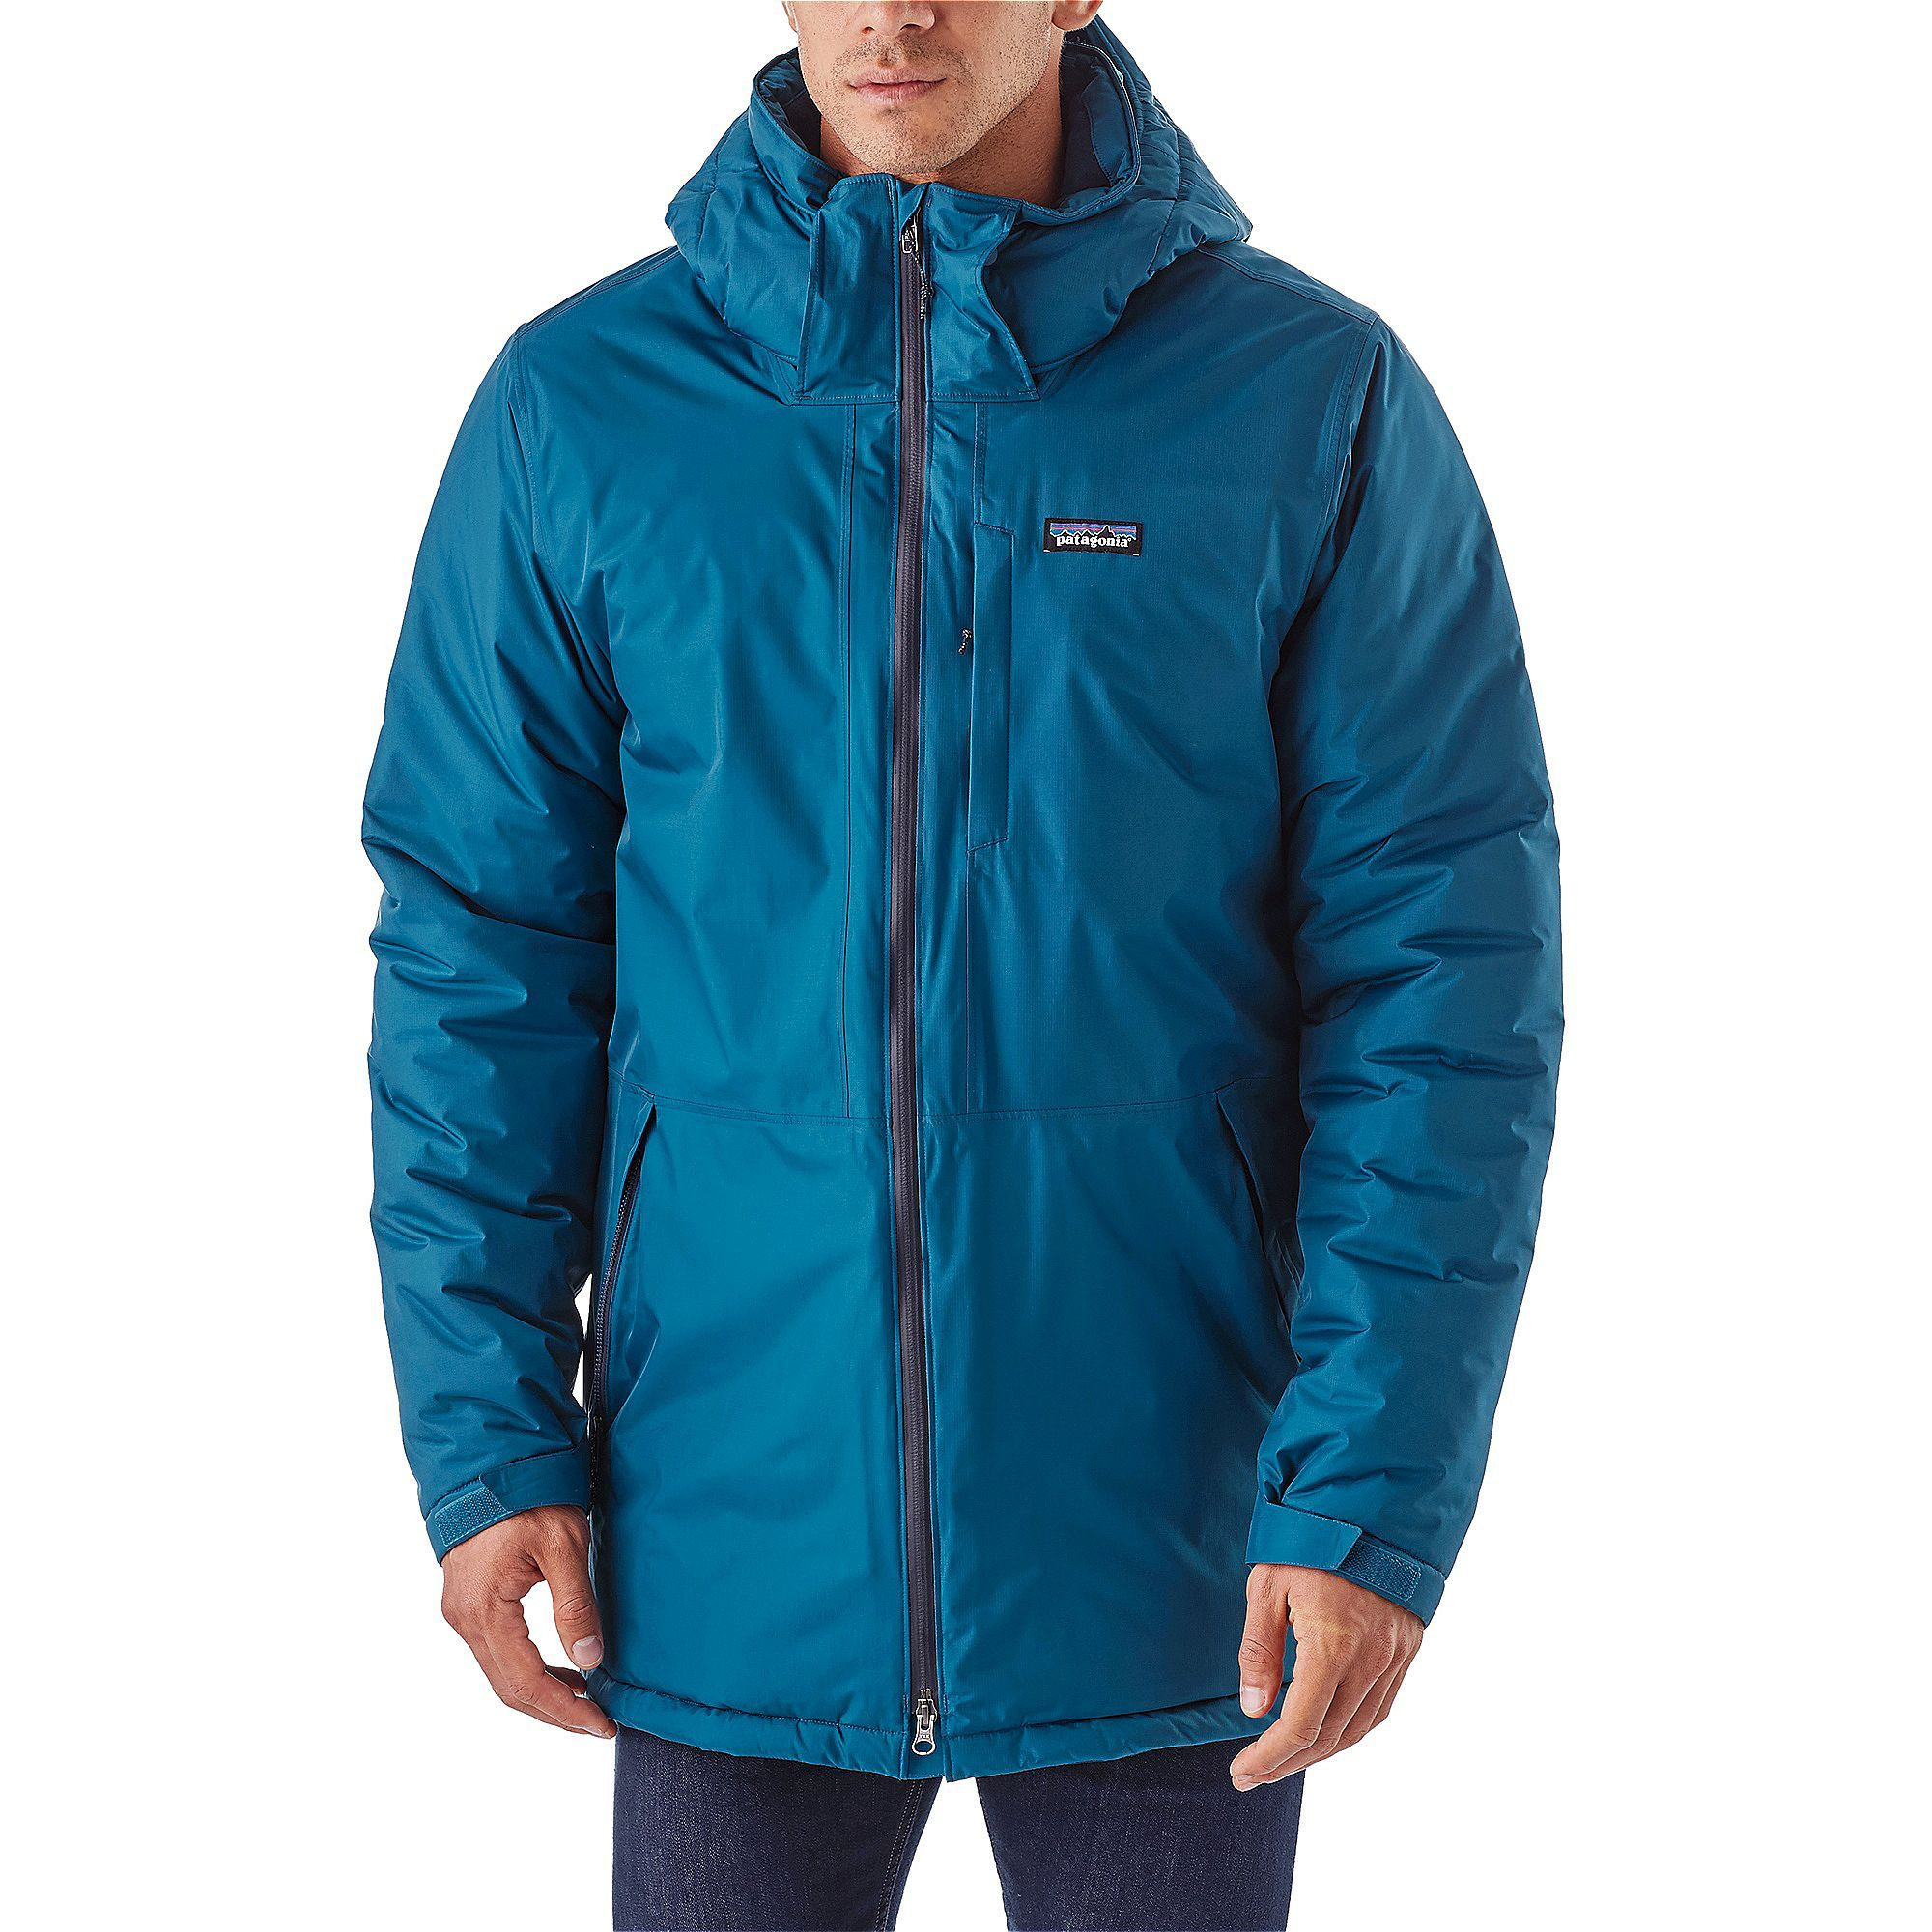 Mens outdoor clothing, Outdoor outfit